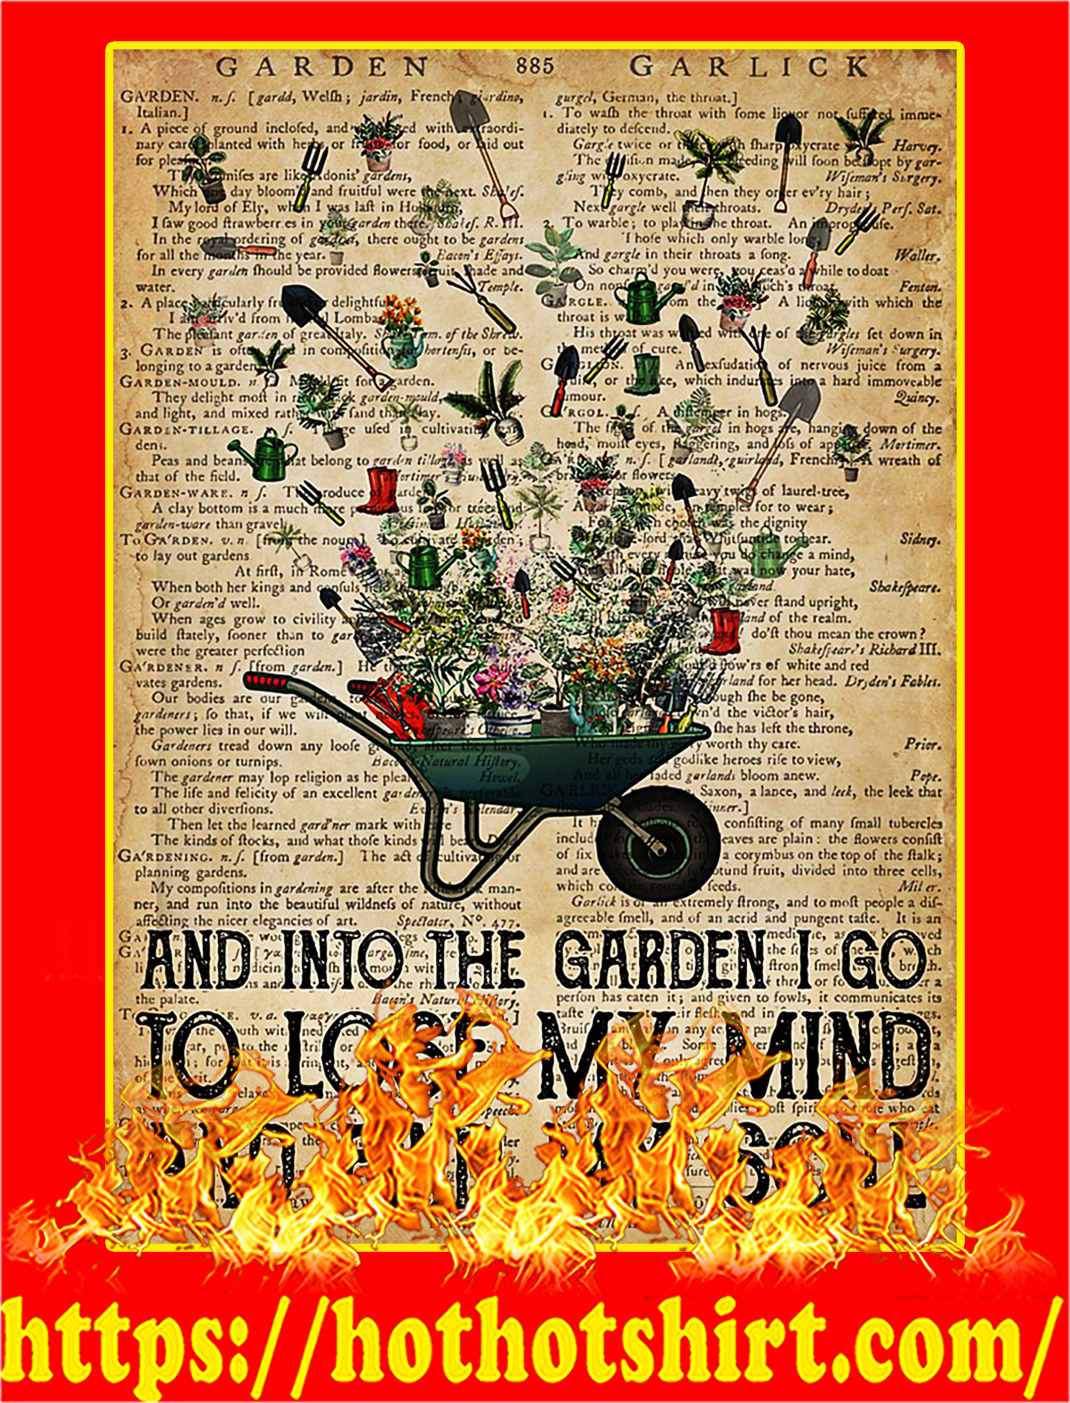 And into the garden I go to lose poster - A2